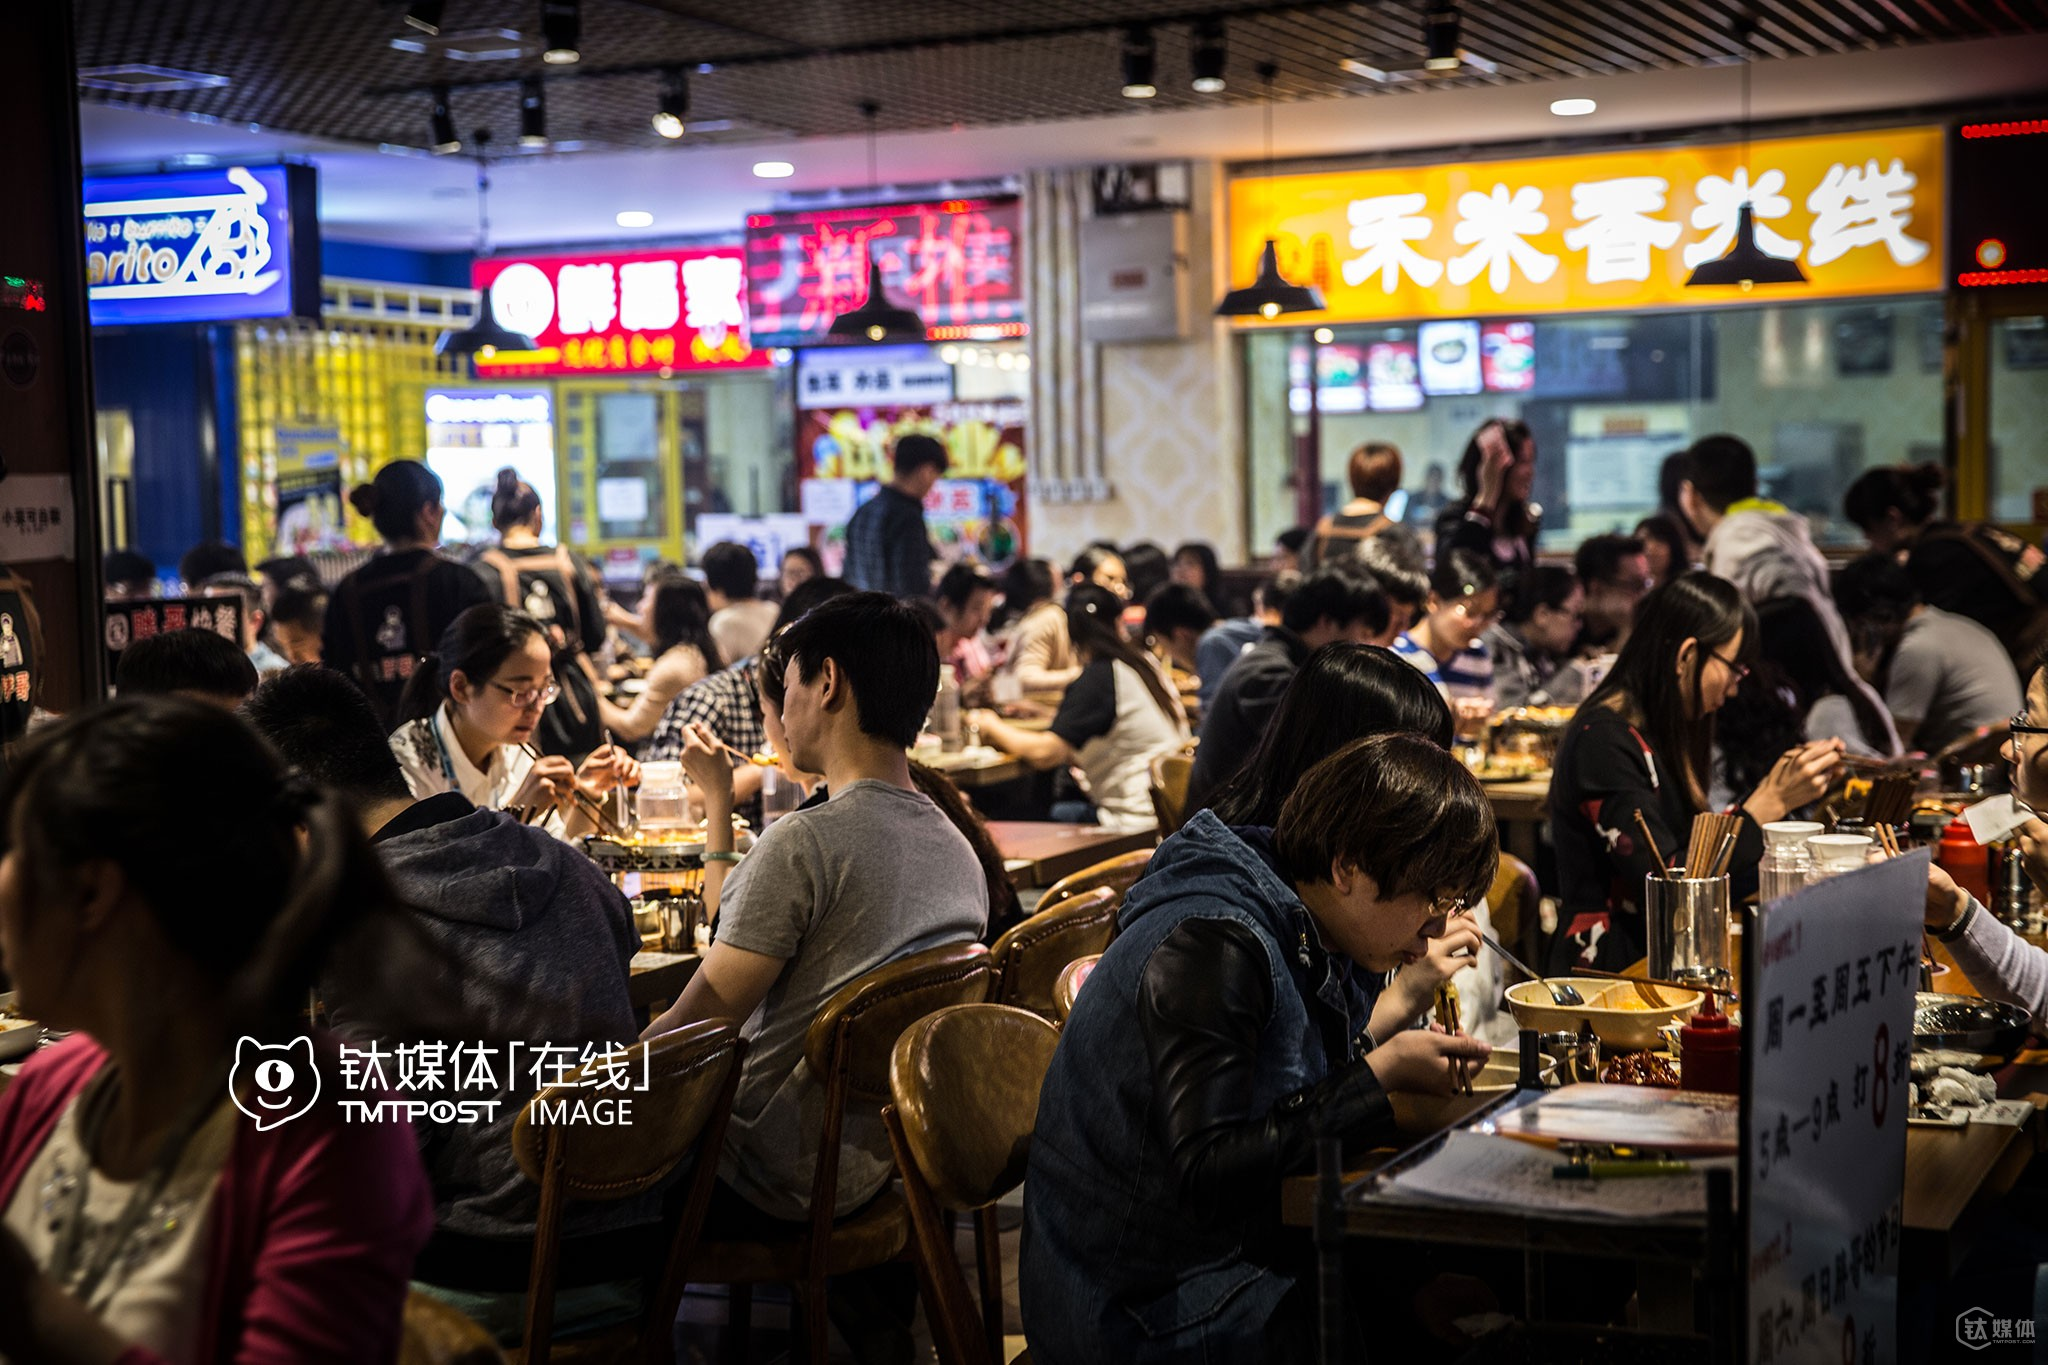 There were many fast food stores at the ground floor of Hui Huang International Hotel. It's inexpensive, convenient and quick to have lunch here, so many white-collar workers working around Shangdi area would choose to have lunch here.